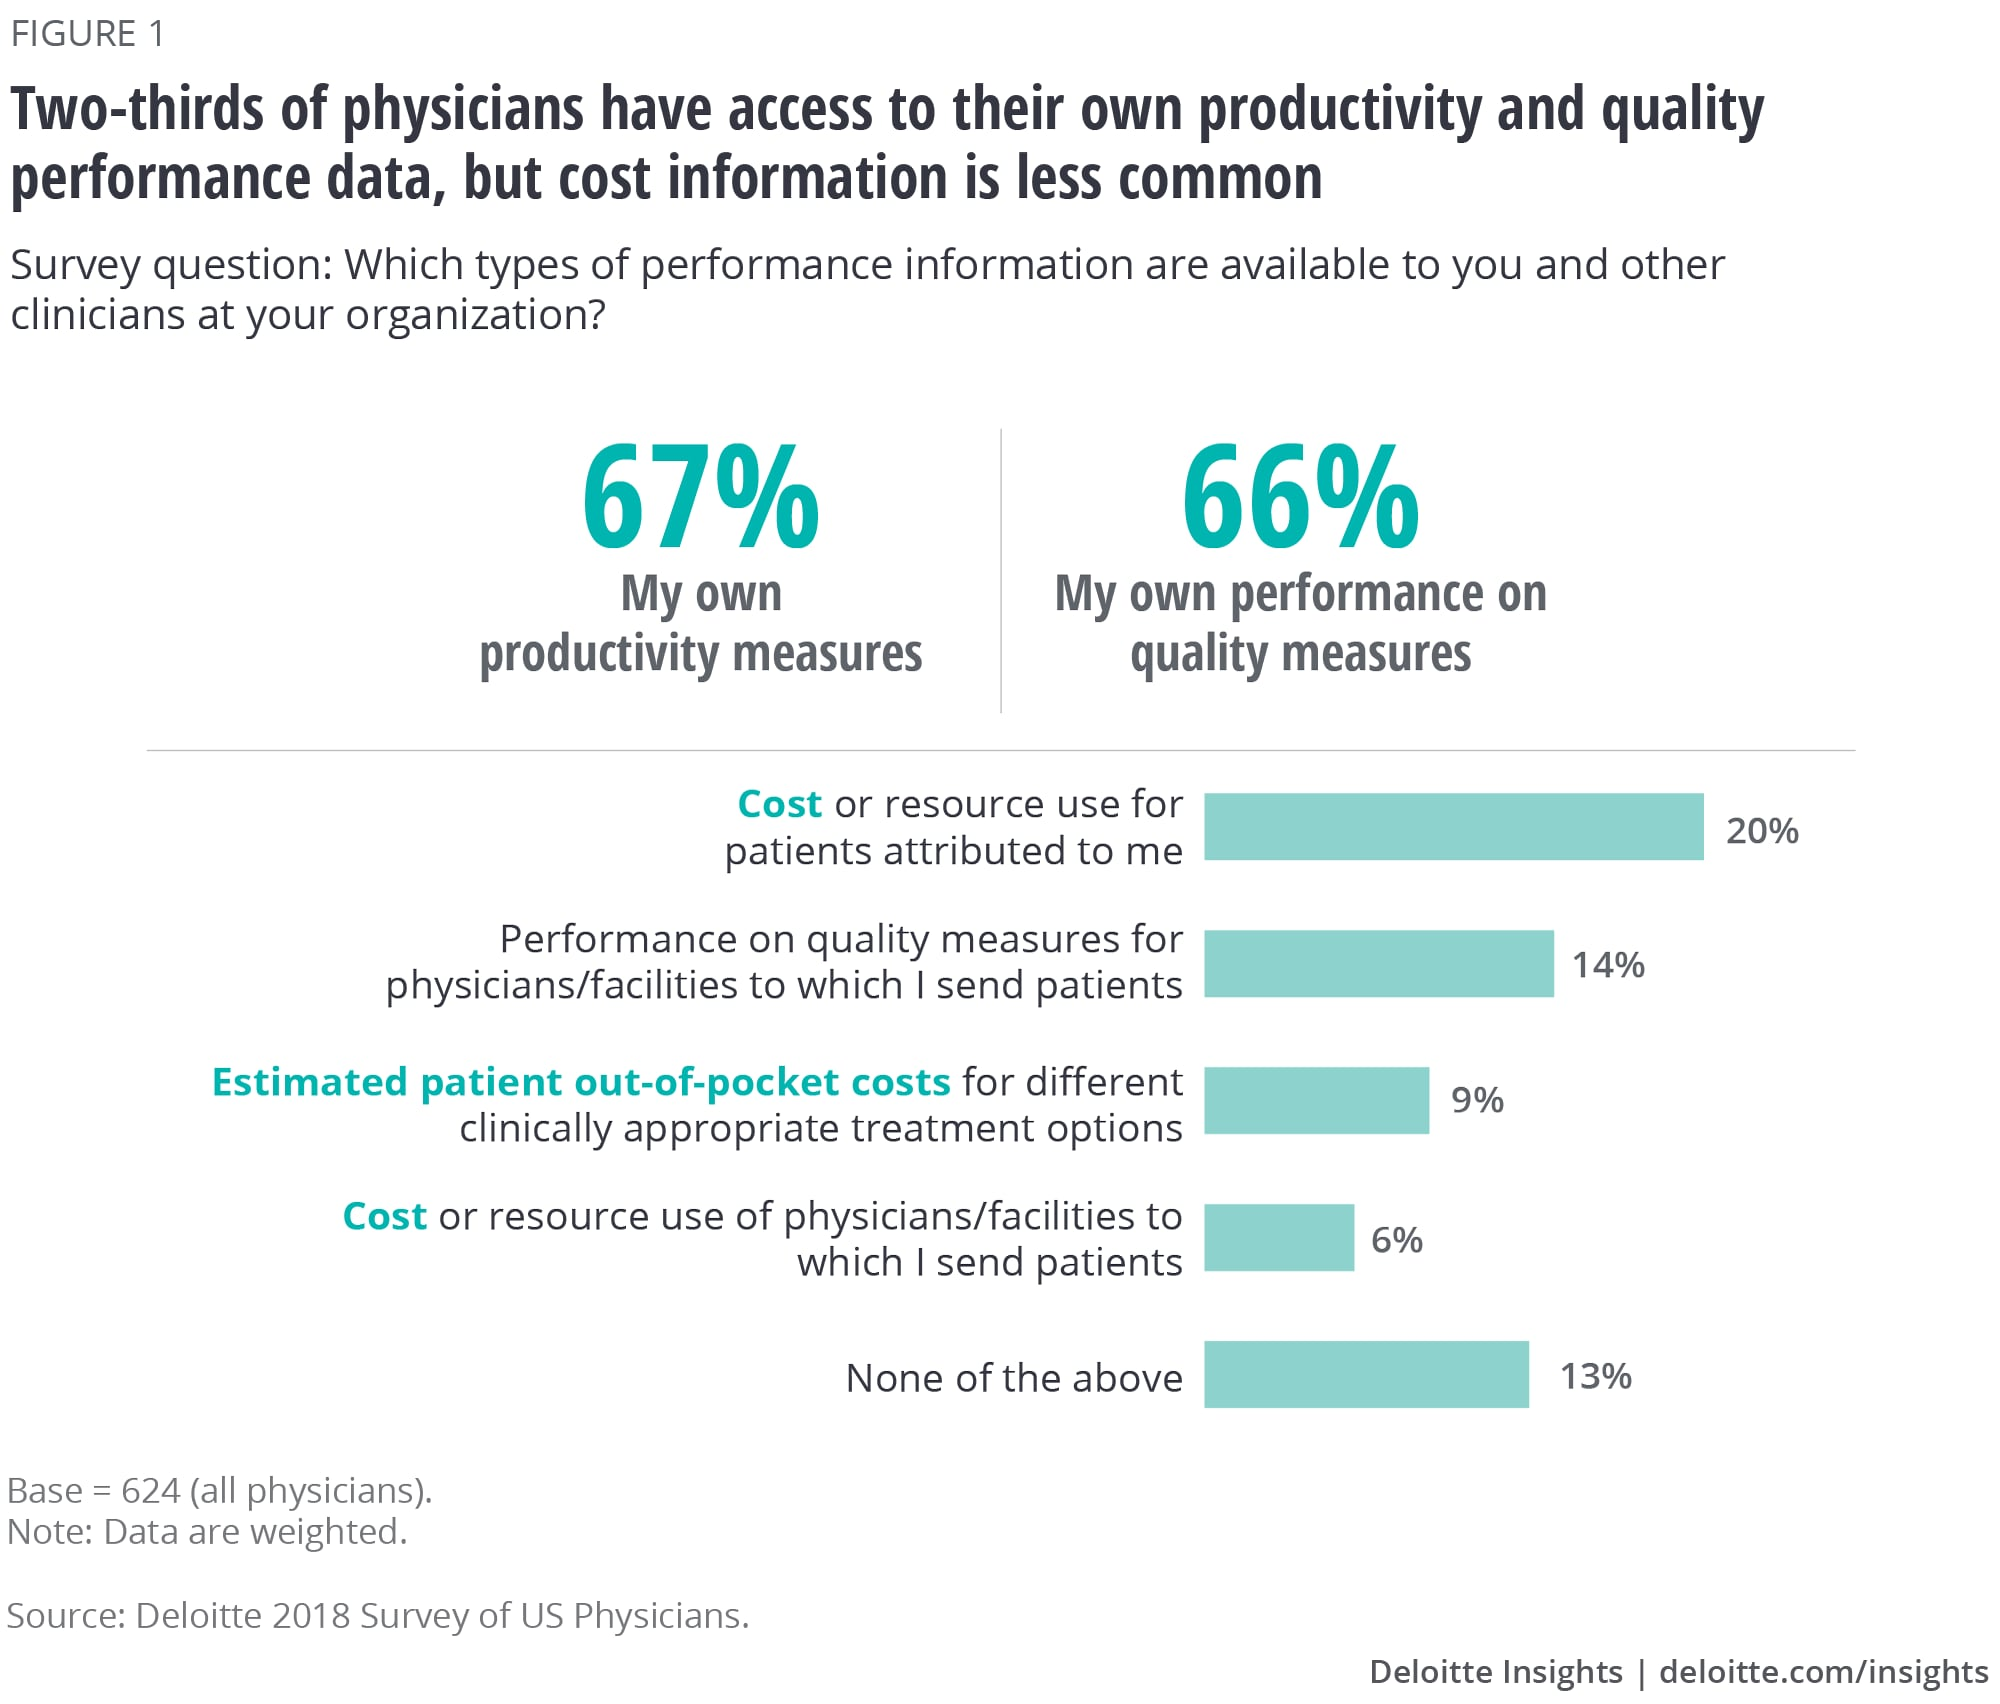 Two-thirds of physicians have access to their own productivity and quality performance data, but cost information is much less commonly available